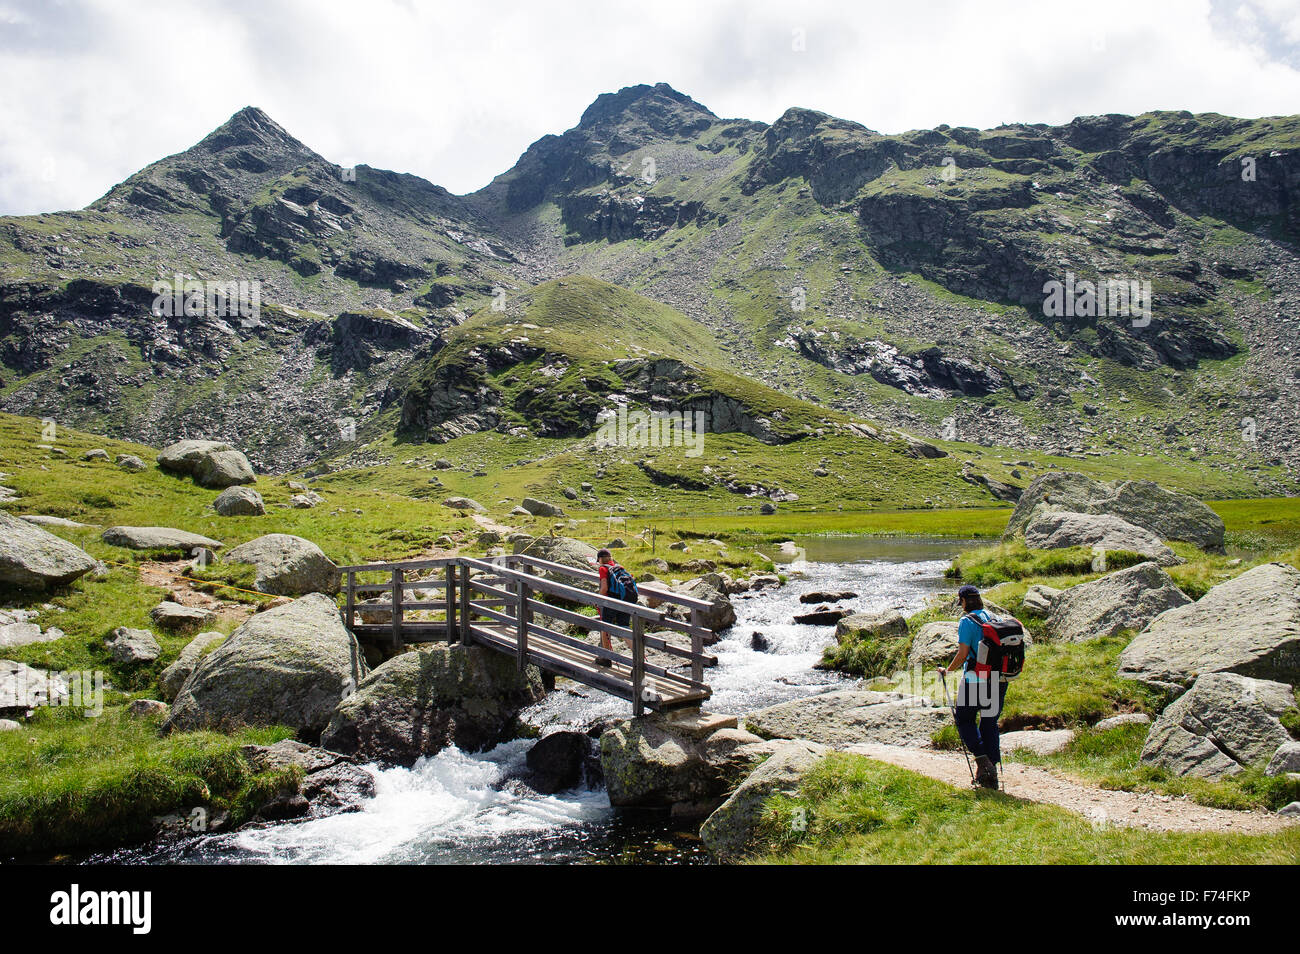 Wanderer auf alpinem Steig mit Brücke / Hiker on wooden bridge on alpine track - Stock Image